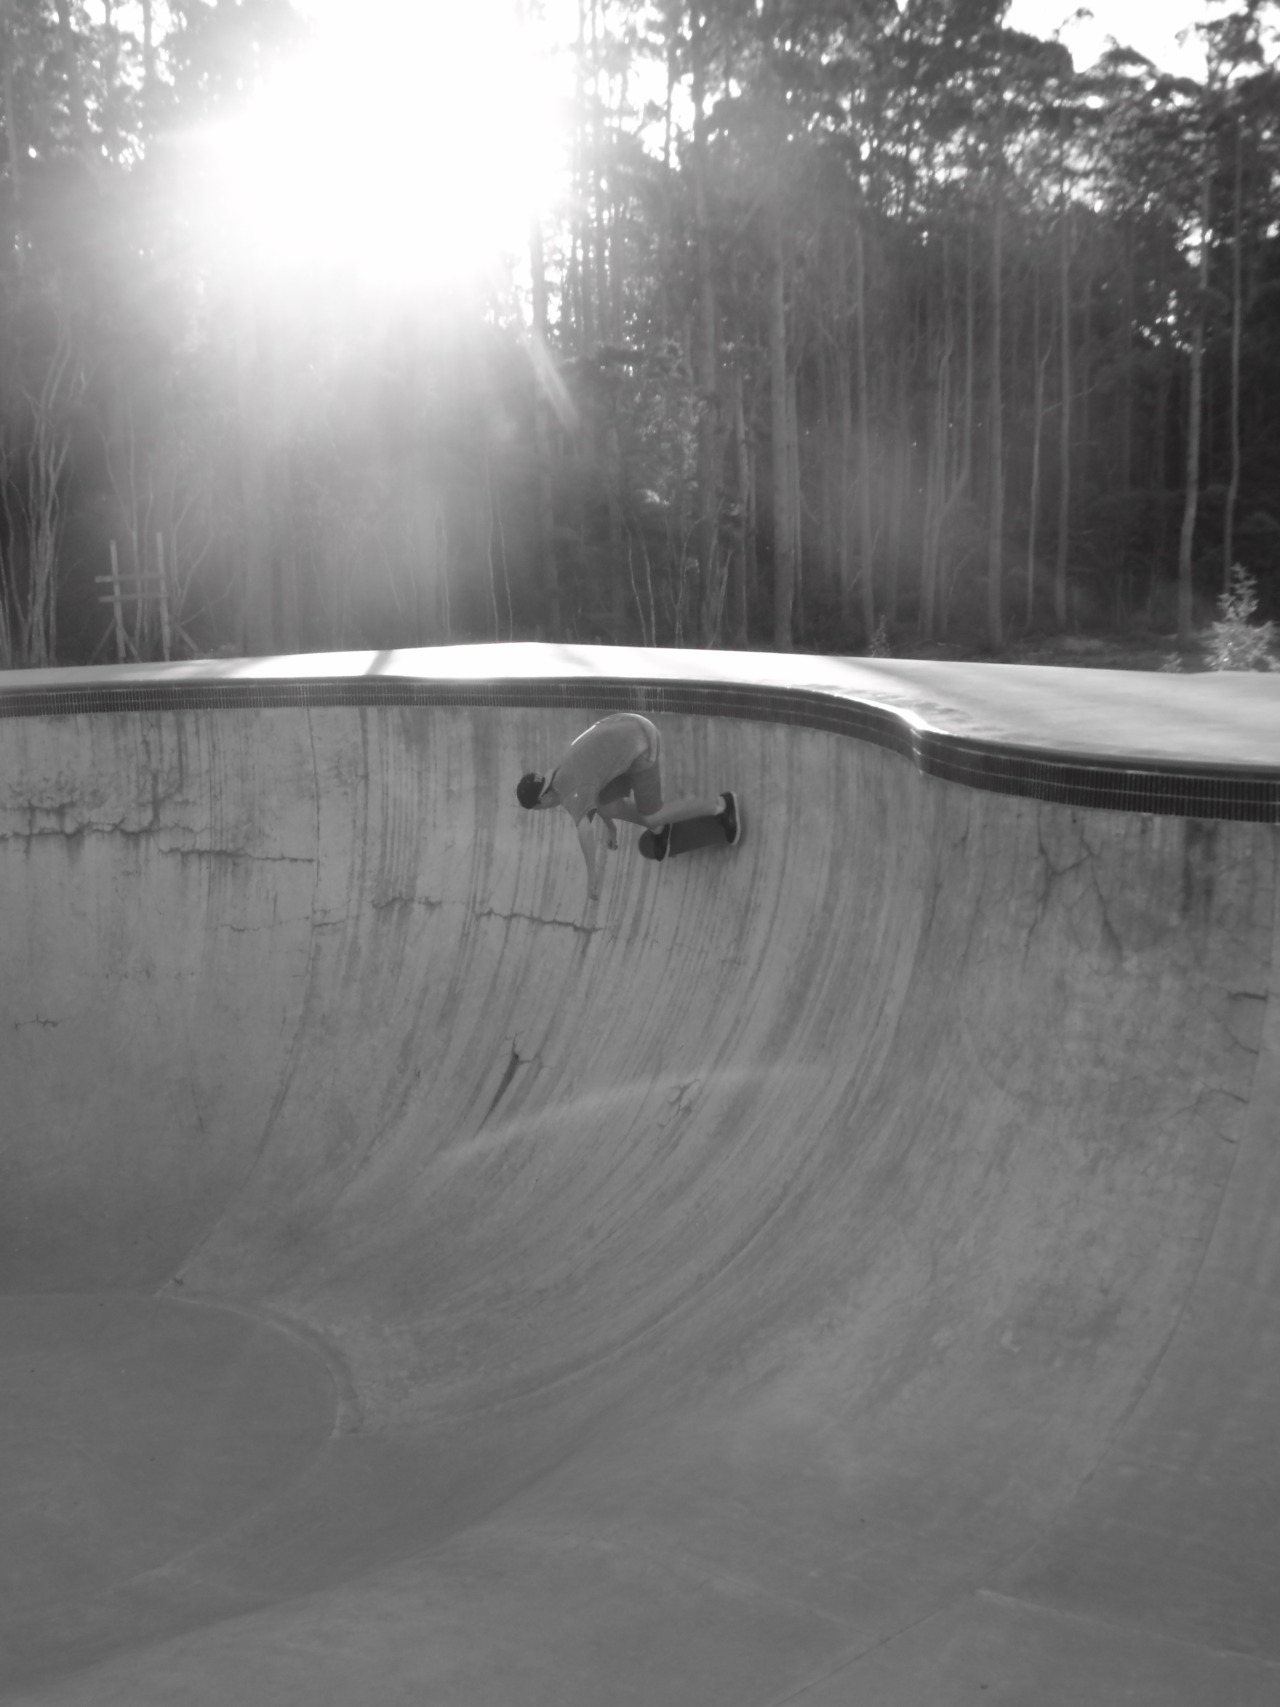 camo-crusade-photography:  Ben skating New Zealands deepest bowl at mangawhai Photo by Fazz http://camo-crusade.tumblr.com/ FOLLOW US FOR MORE